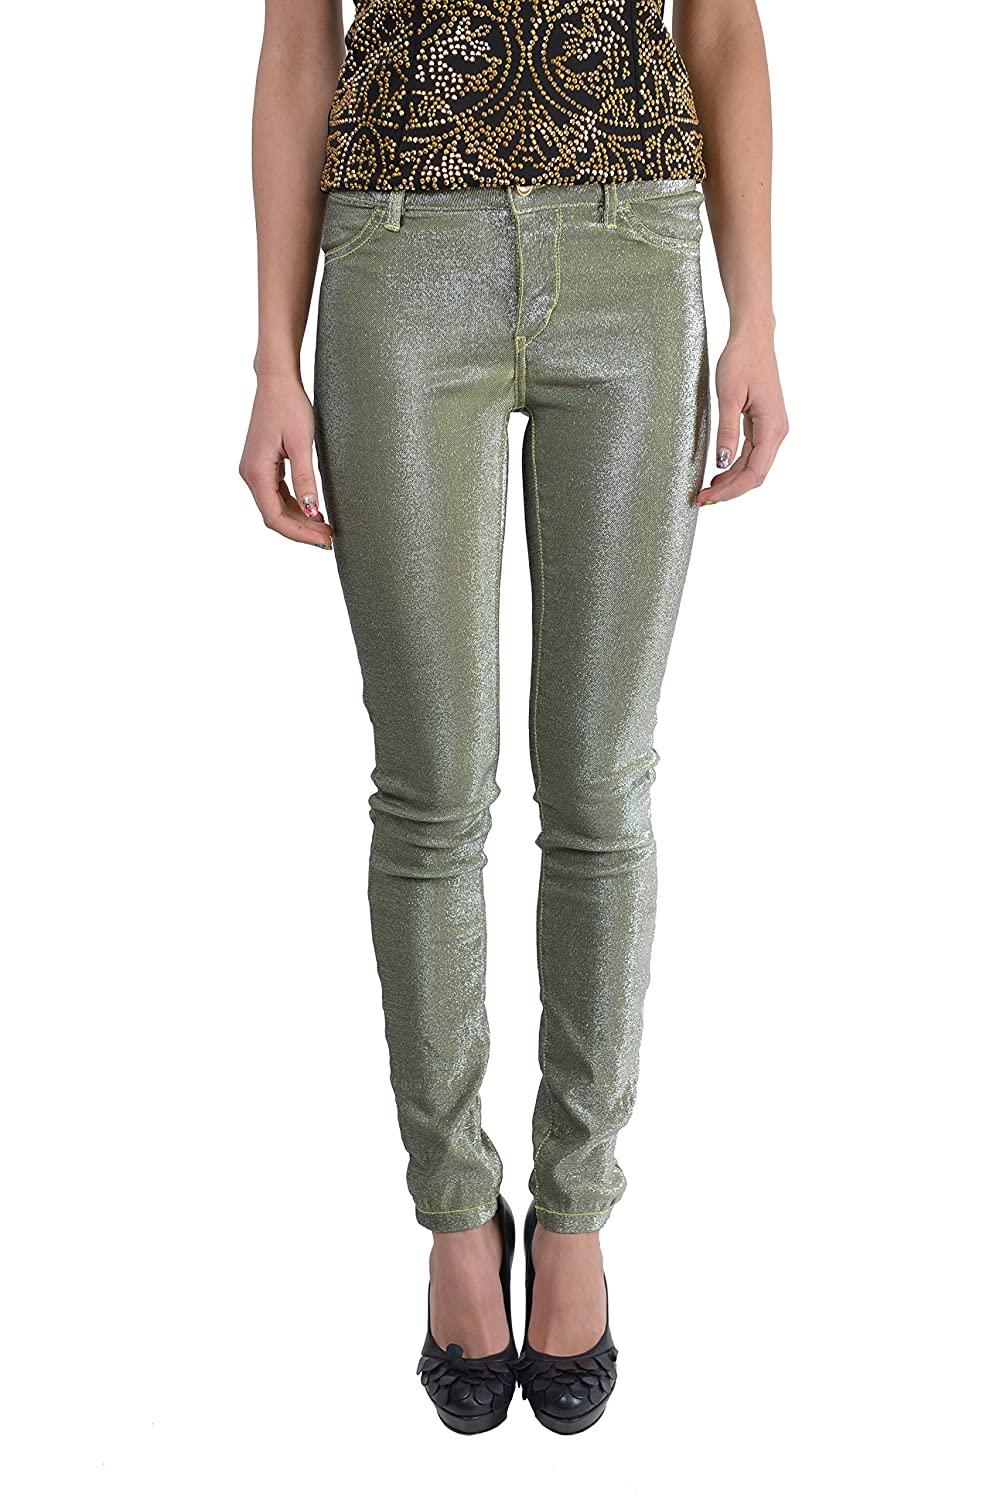 Just Cavalli Women's 'Just Chic' Green Sparkle Jeggings Pants US 26 IT 40